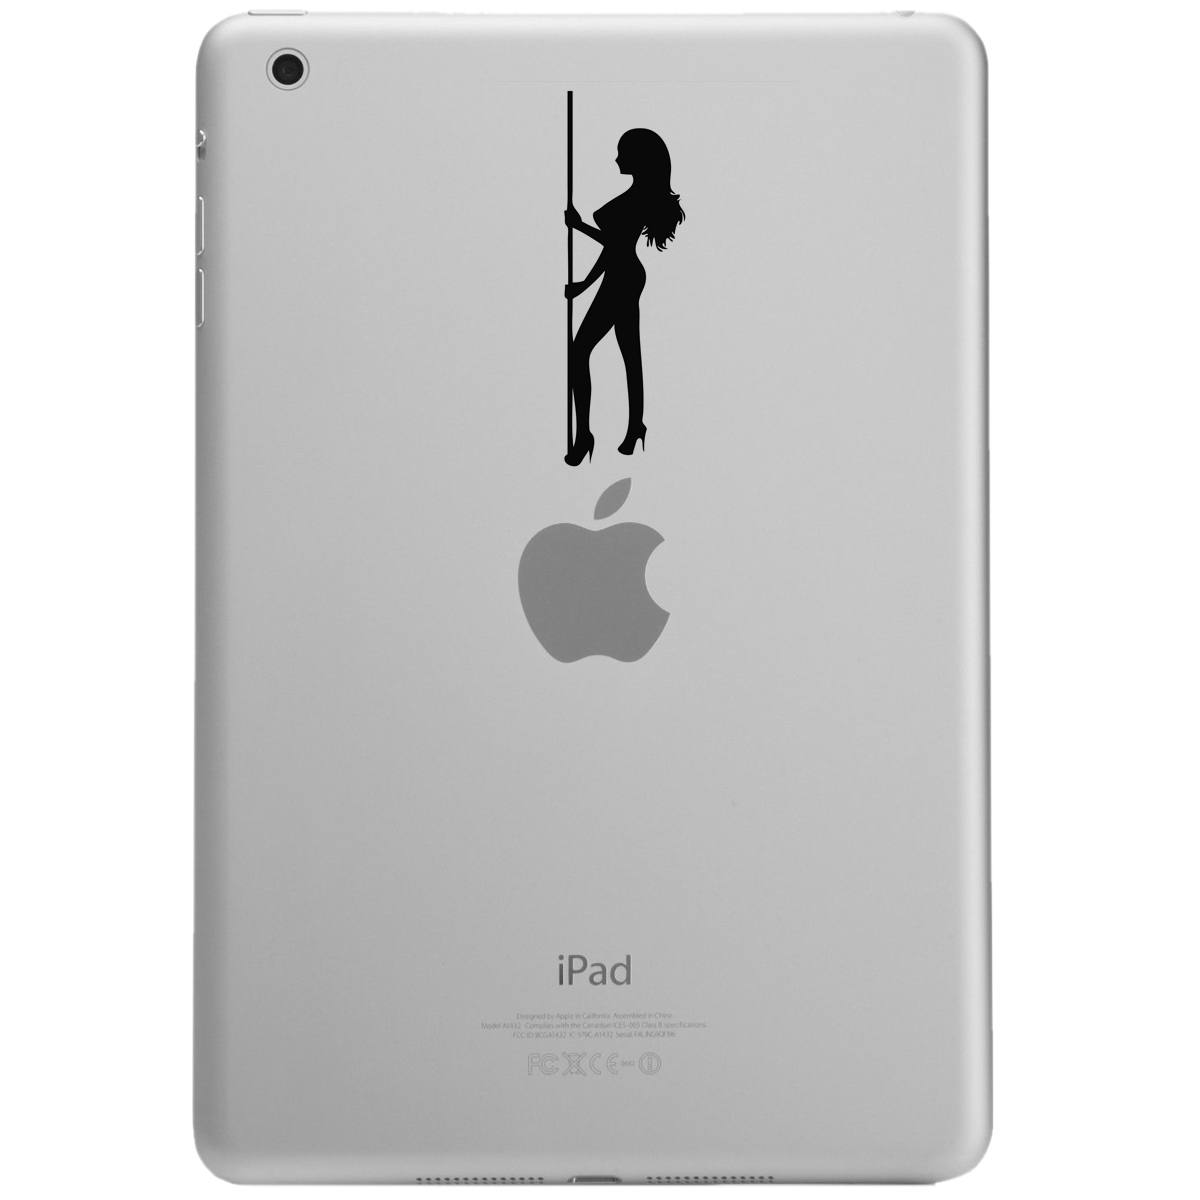 Sexy Stripper Pole Girl Silhouette iPad Tablet Vinyl Sticker Decal